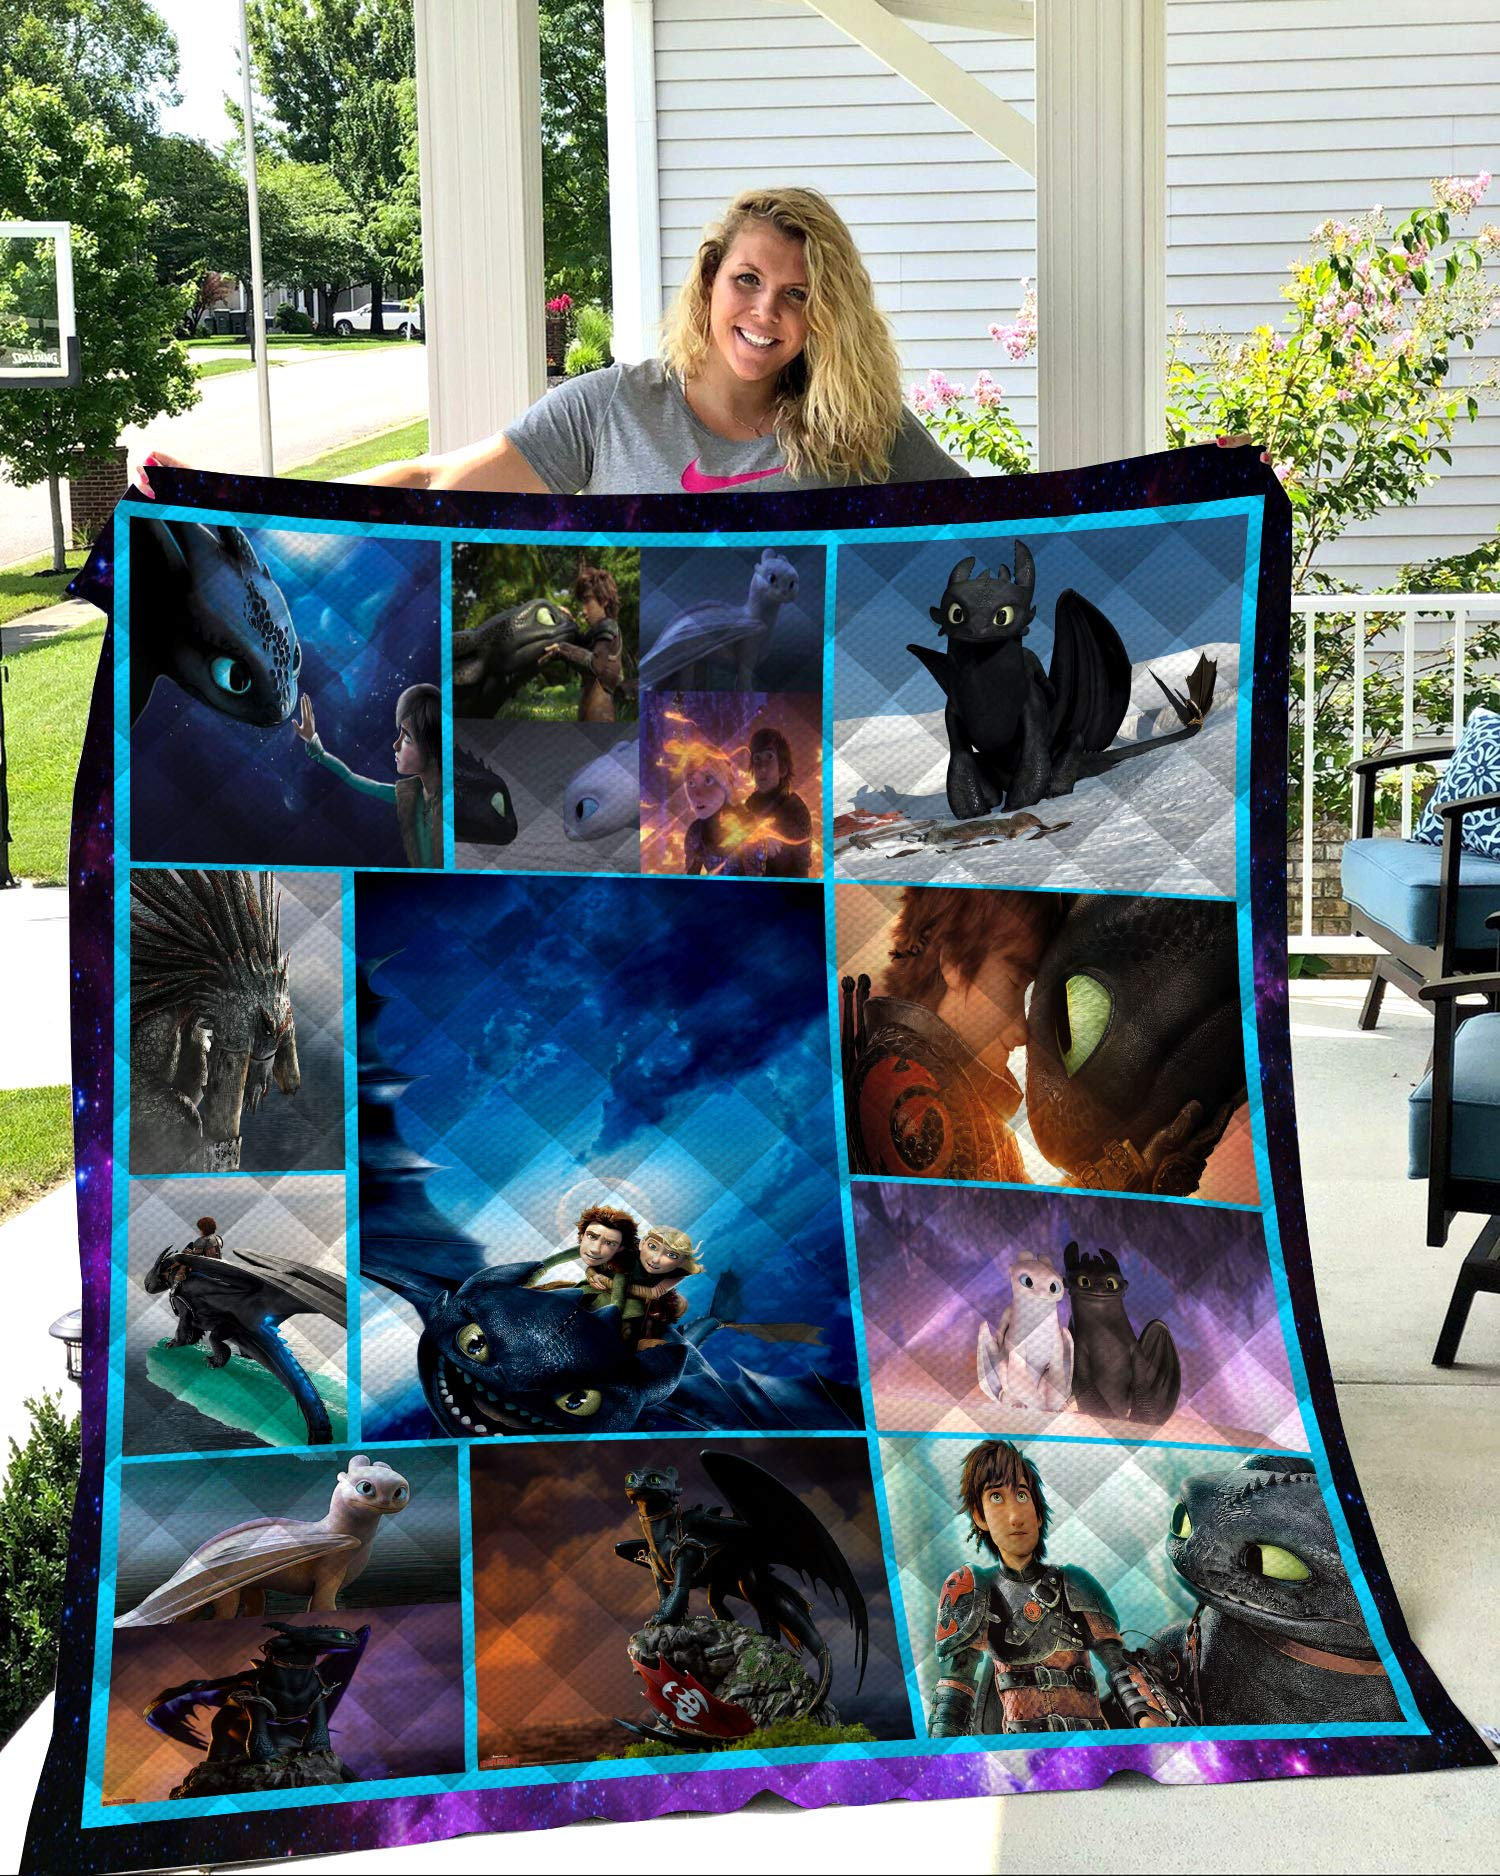 Summer 3D How to Train Your Dragon Quilt Blanket for Kids Adult Bedding Throw Warm Thin Blanket Cotton Quilt Queen King Size (Style 1,200cm230cm) by OWHO